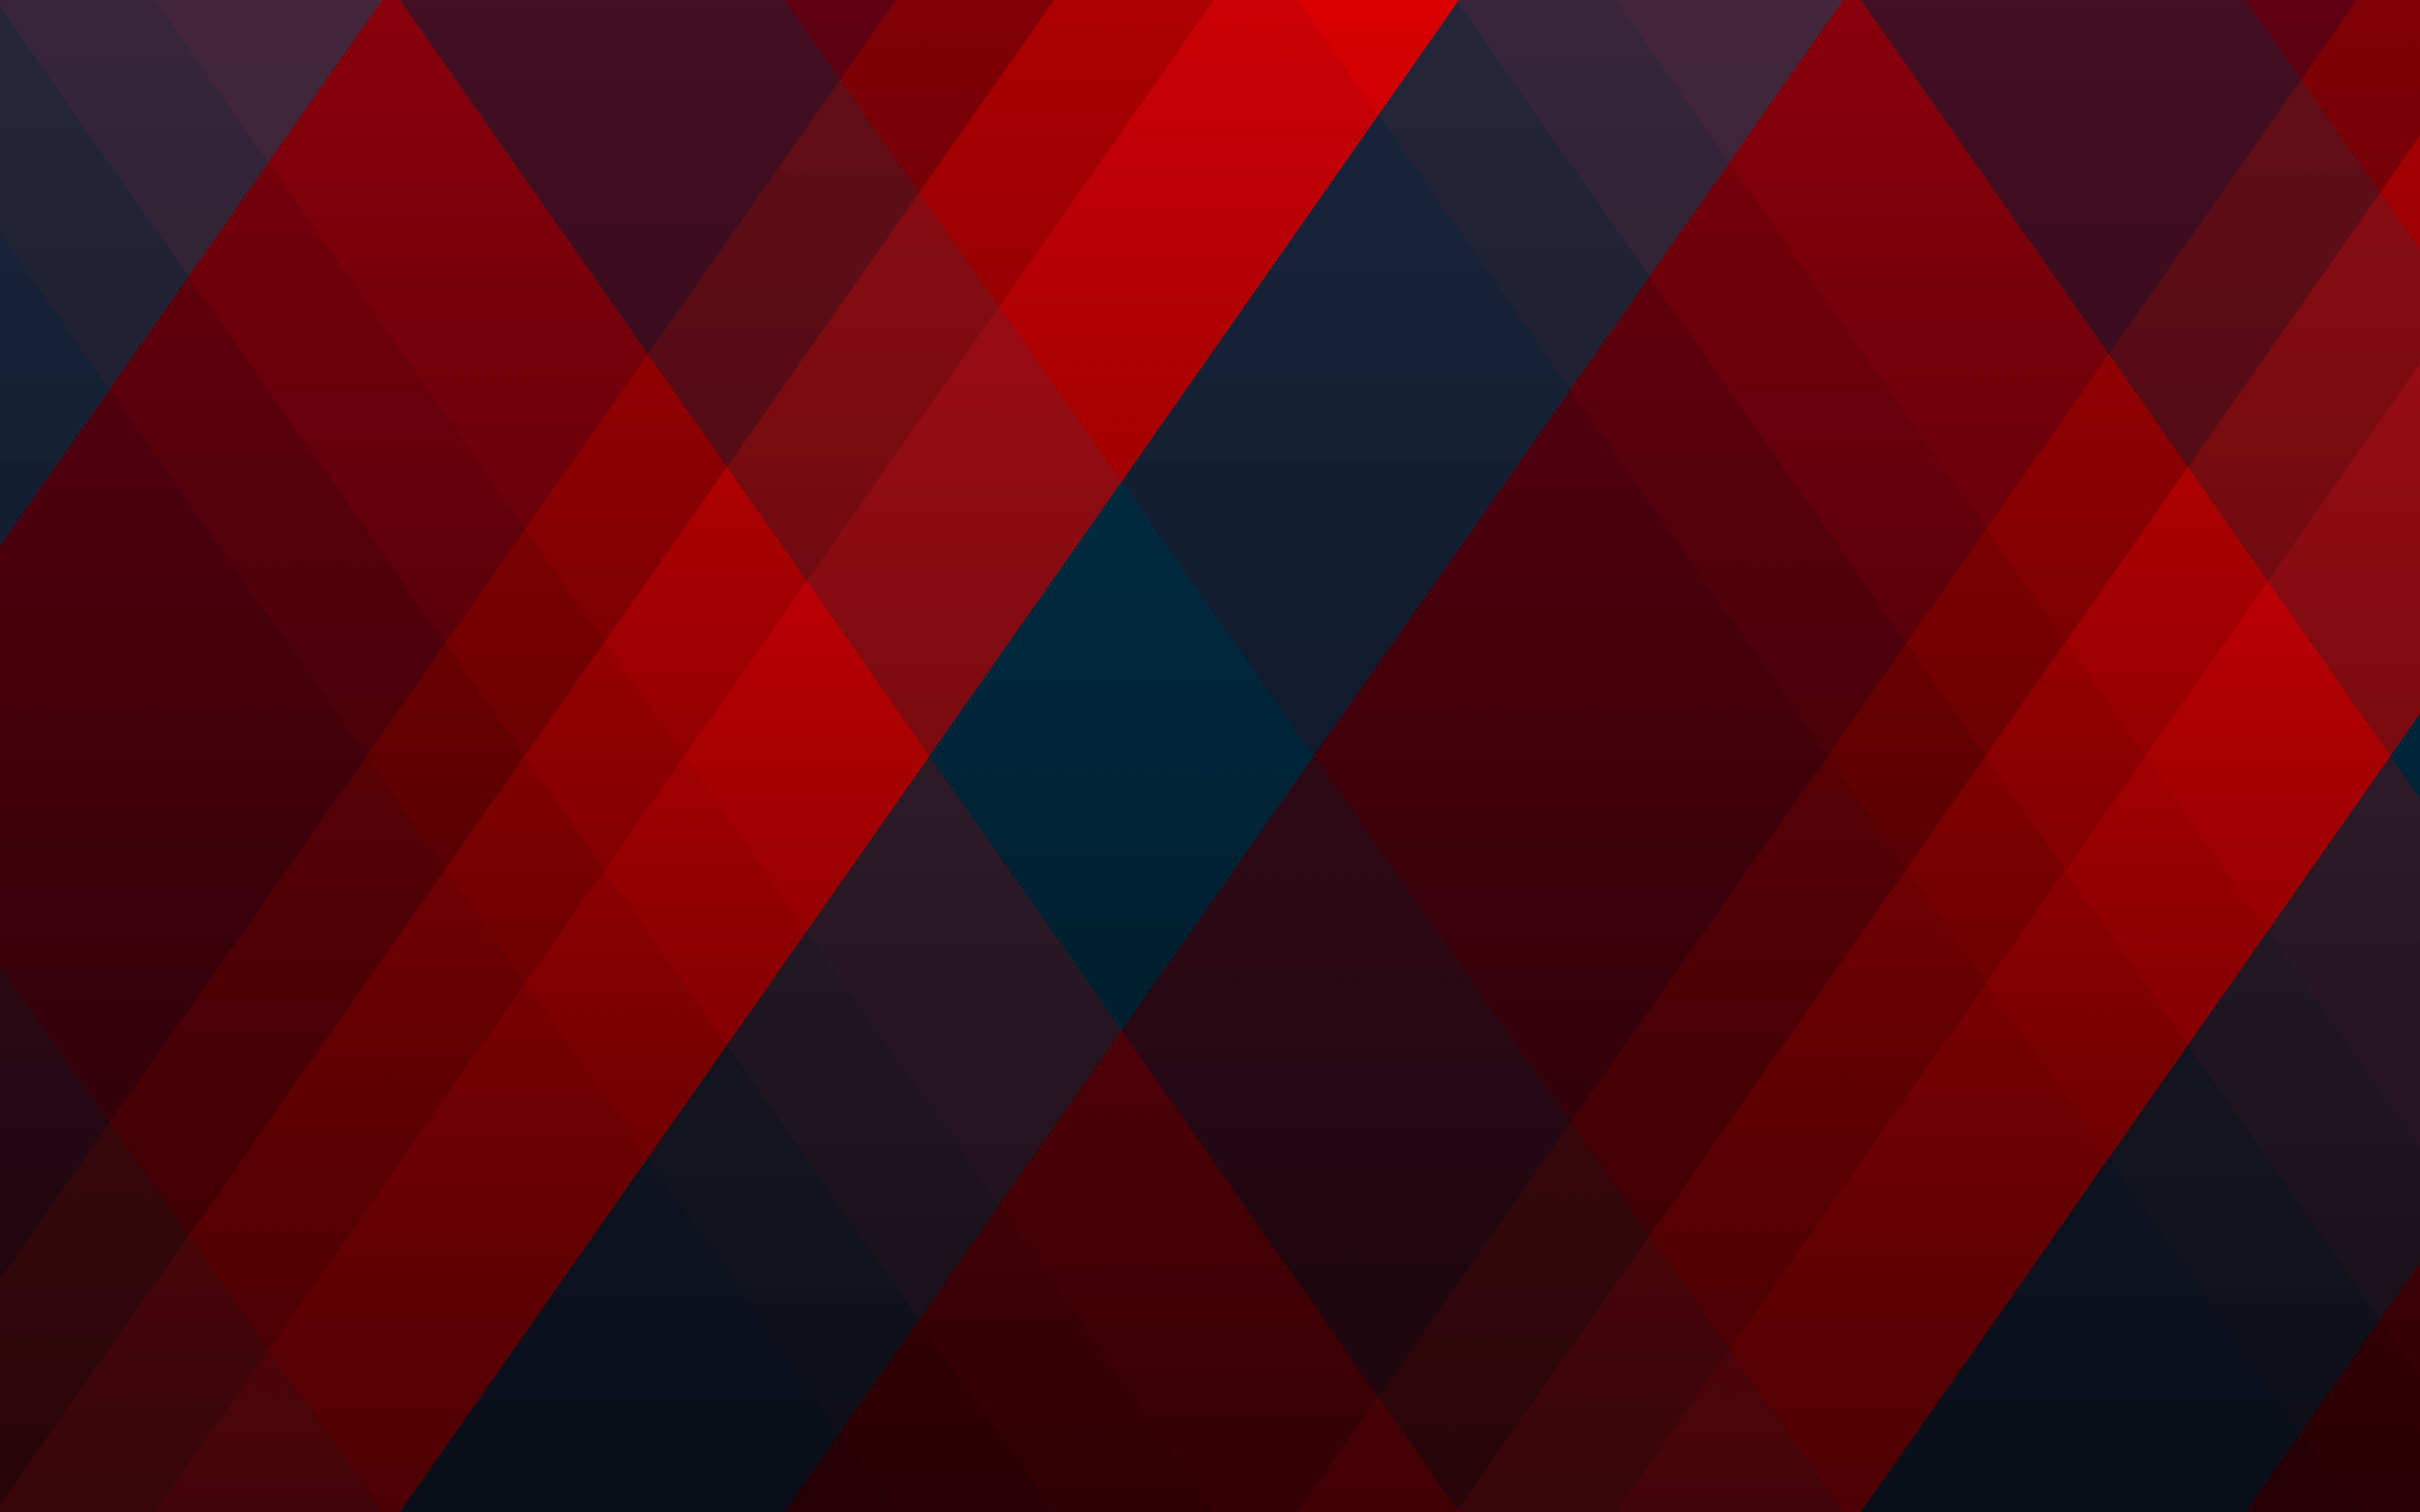 Red And Blue Wallpapers - Wallpaper Cave